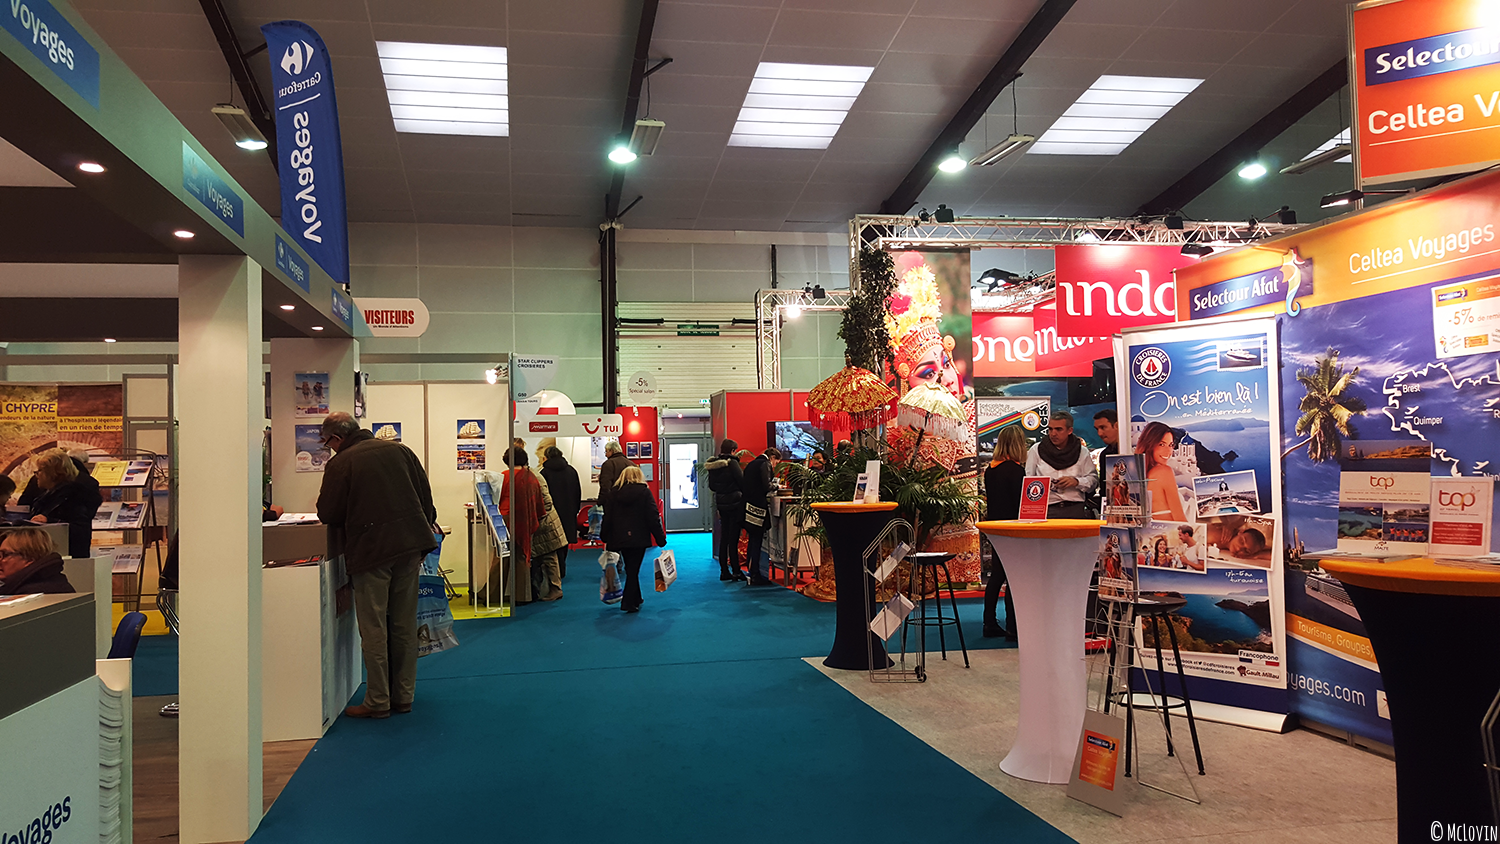 Salon international du tourisme rennes mclovin not war for Salon international du tourisme rennes